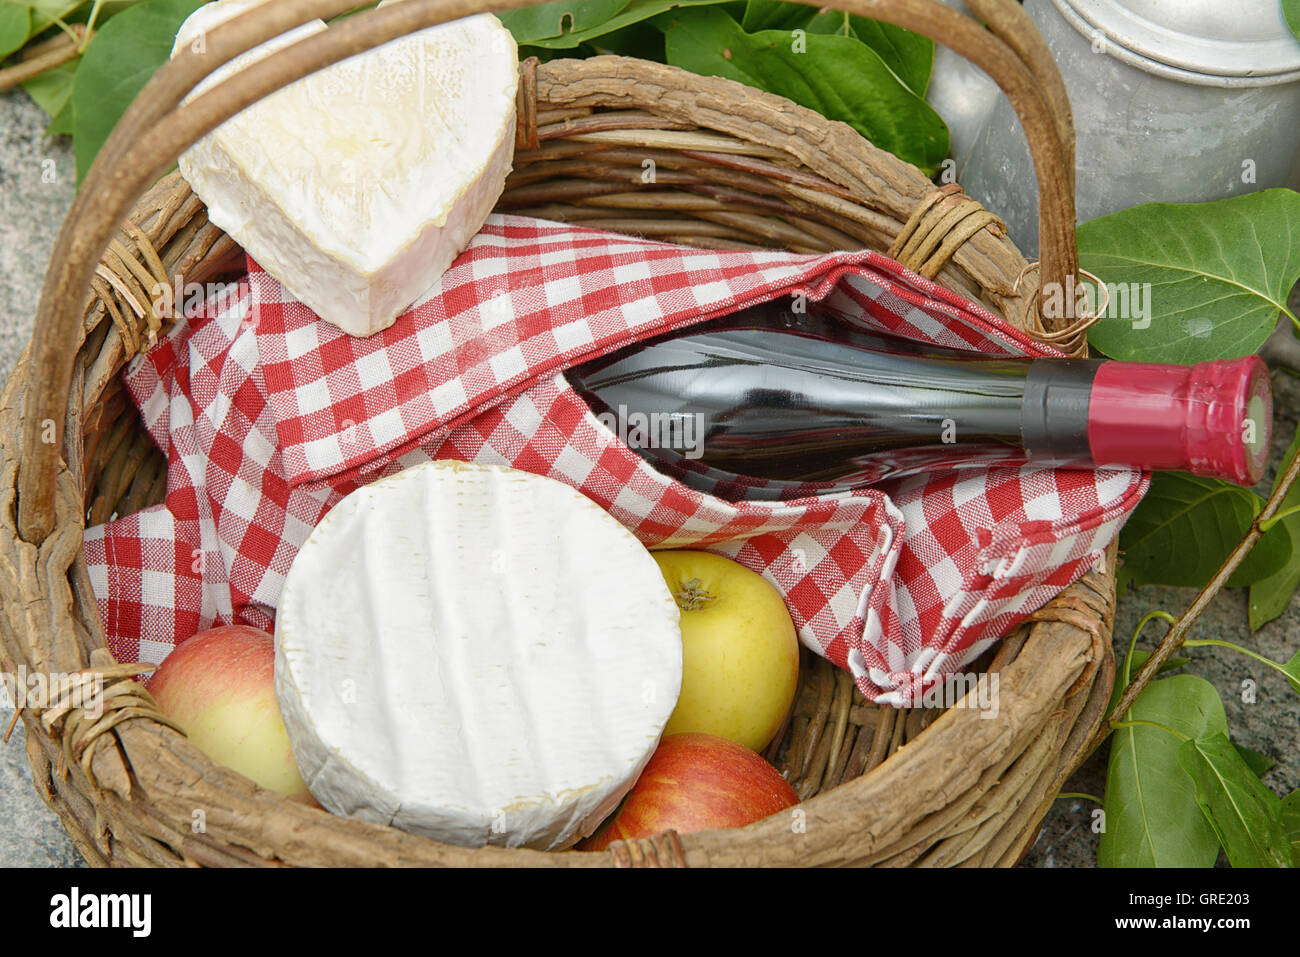 Camembert and Neufchatel cheese with bottle of wine - Stock Image